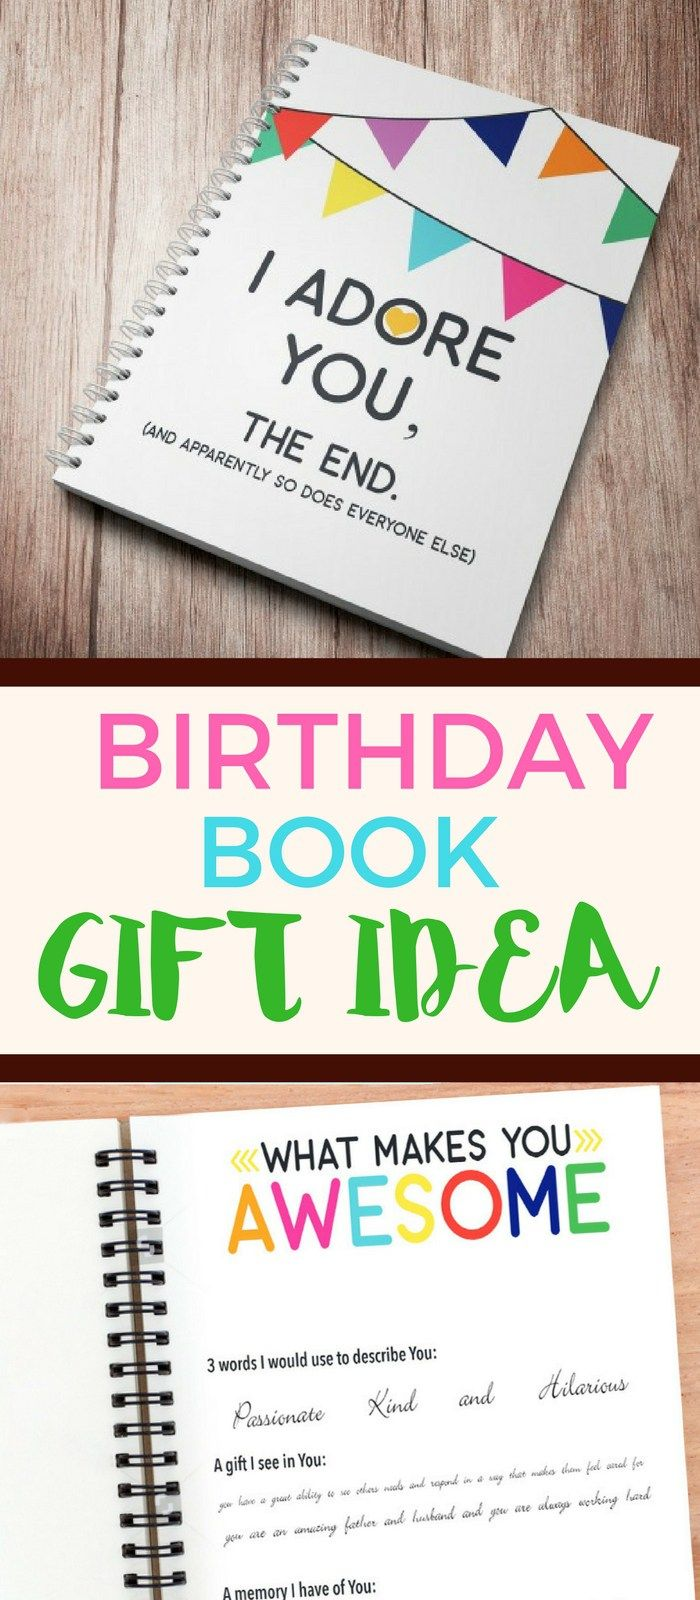 Happy Birthday To My Husband Letter Book Best Birthday Gifts Birthday Book Birthday Present For Husband